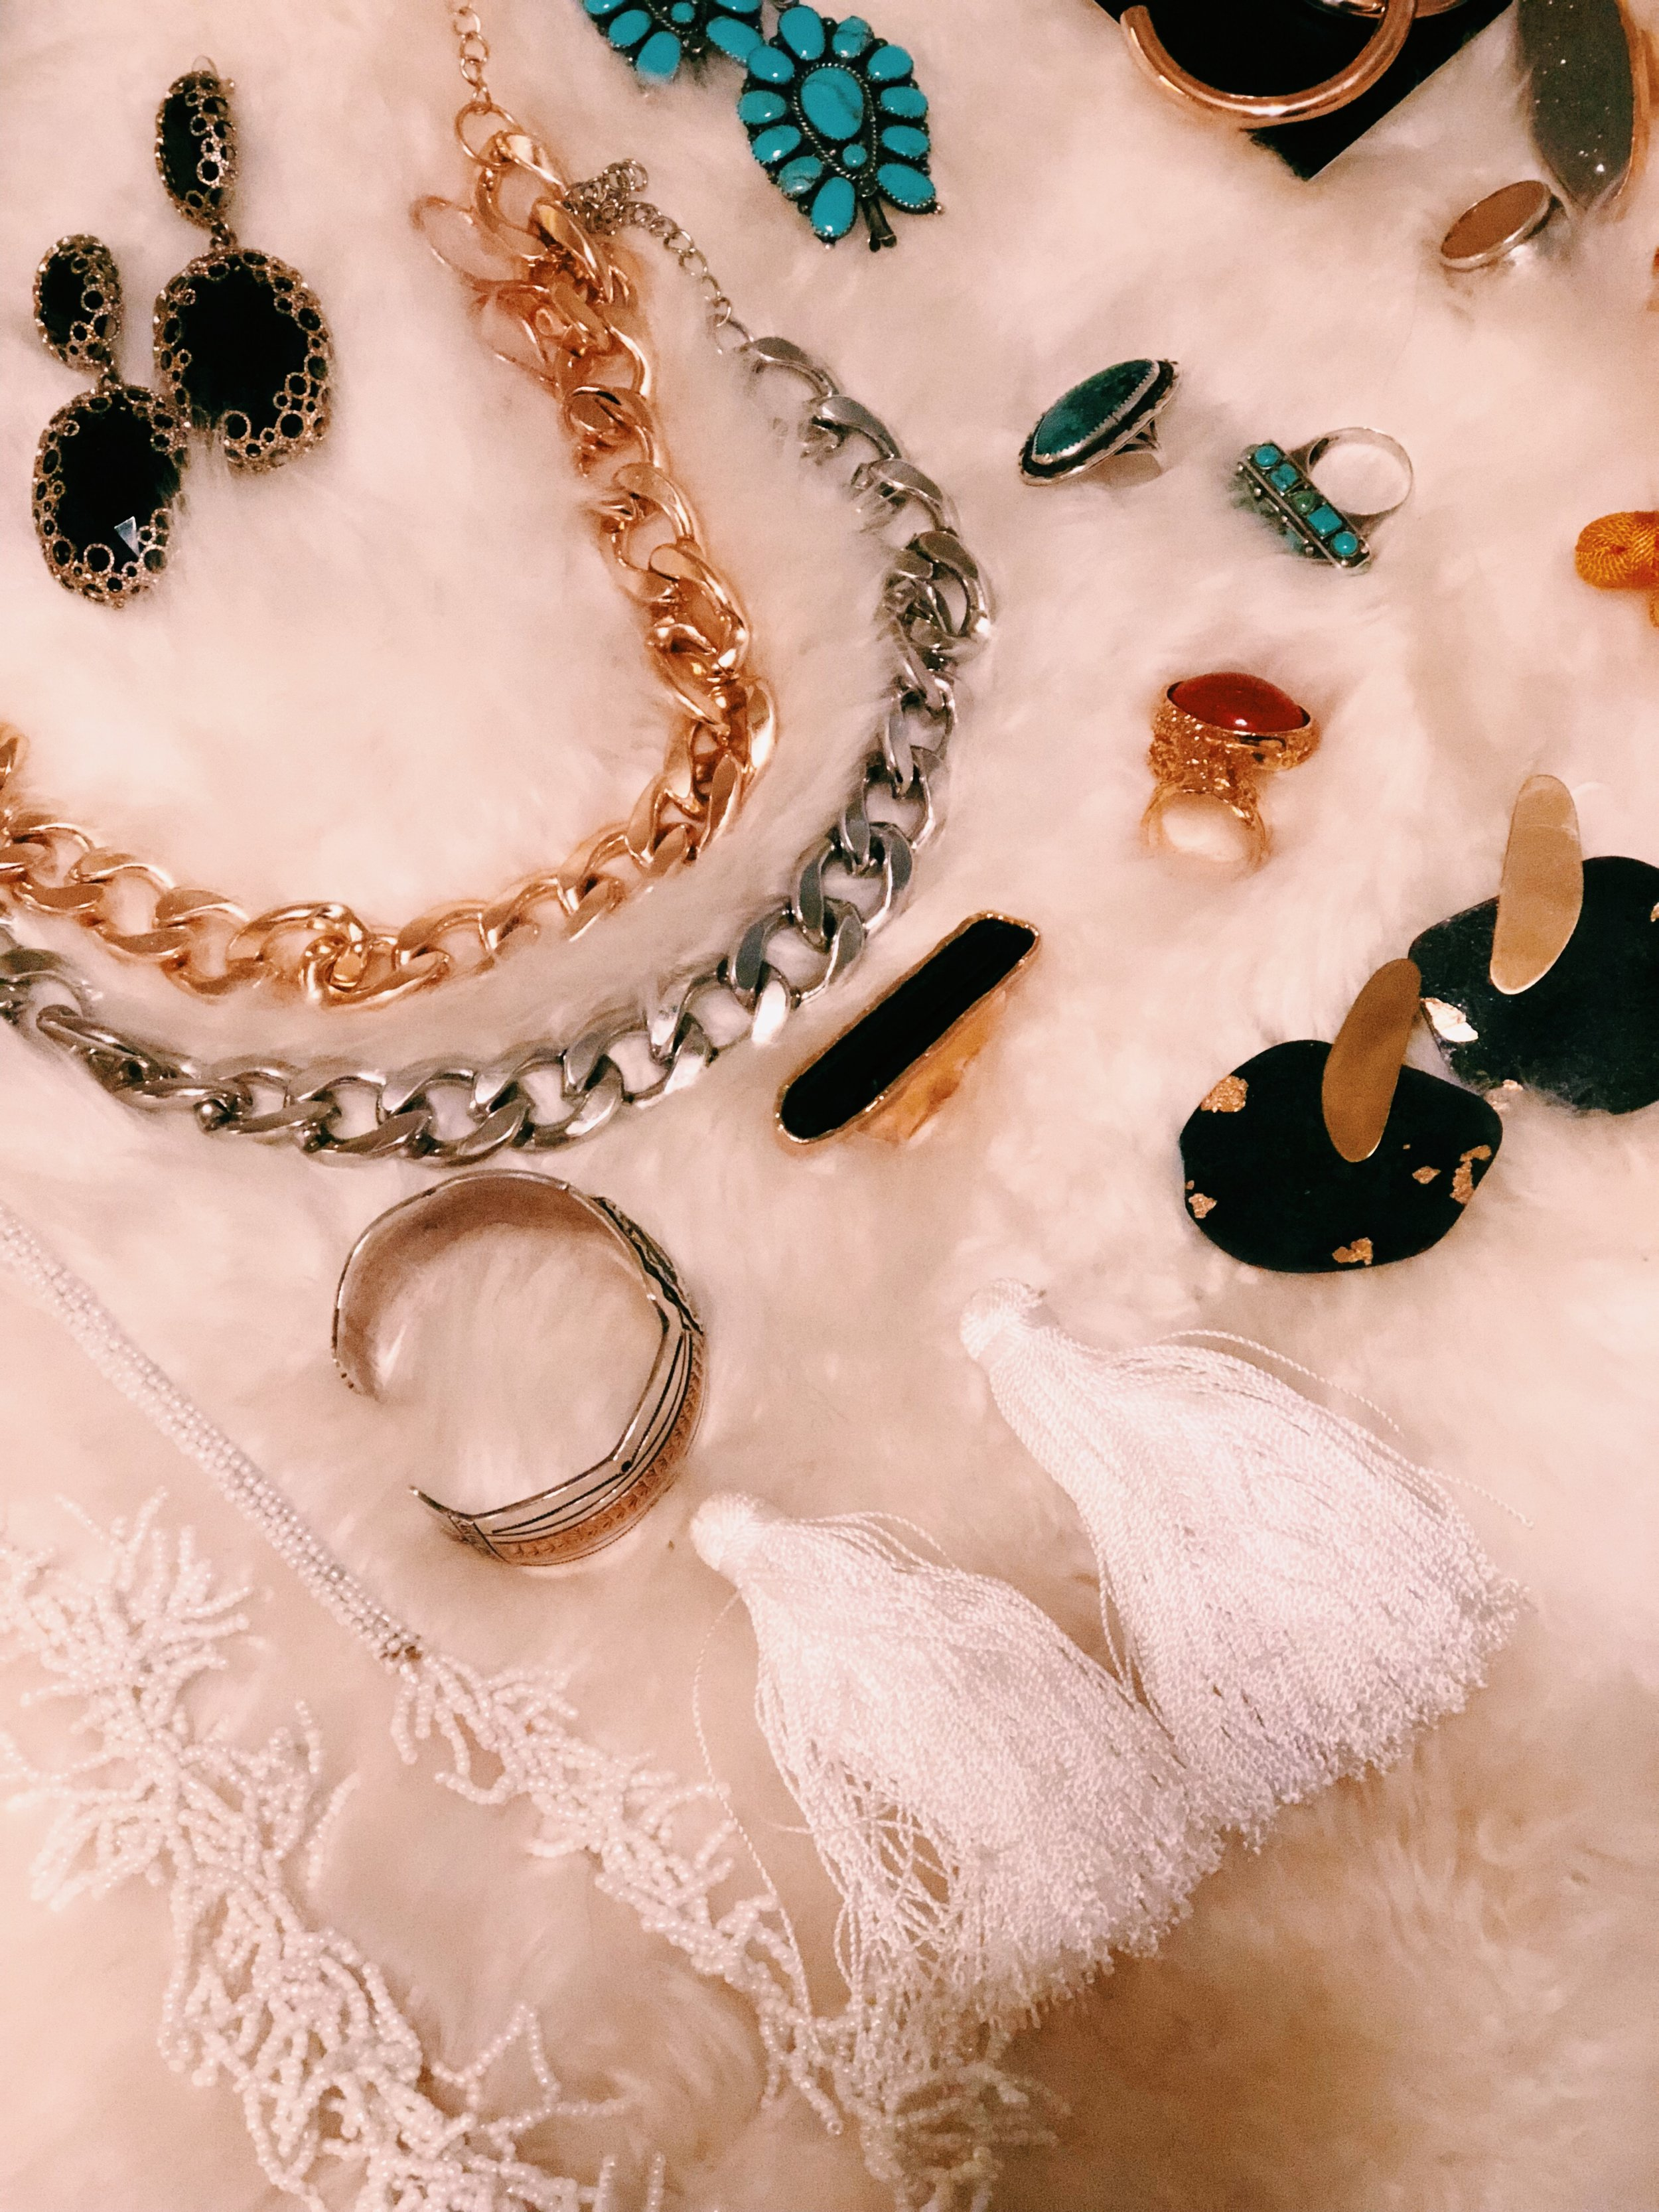 A snapshot of the jewelry I packed for the trip. I included my wedding jewelry (bottom right) in the bunch for when I wanted a romantic touch to my look